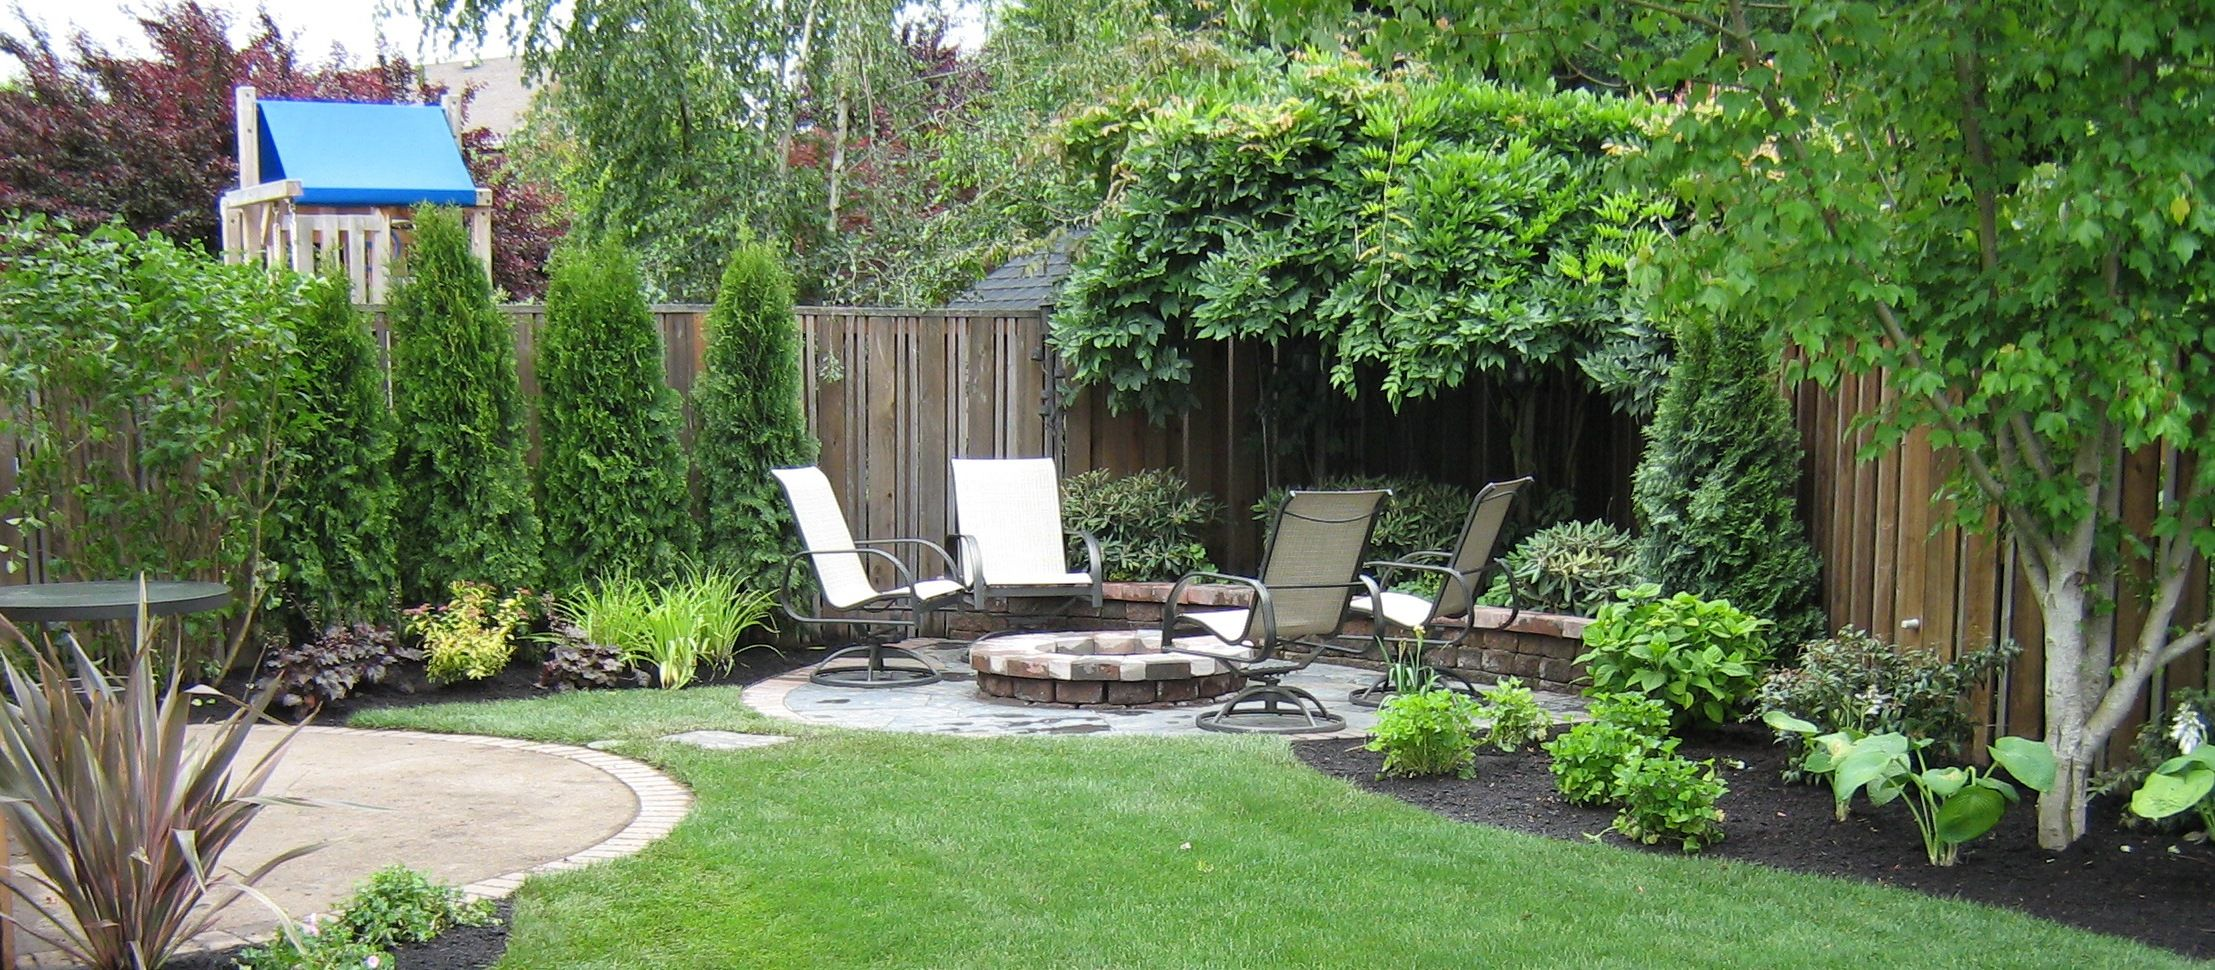 Small backyard landscaping ideas photos garden design for Landscape design ideas